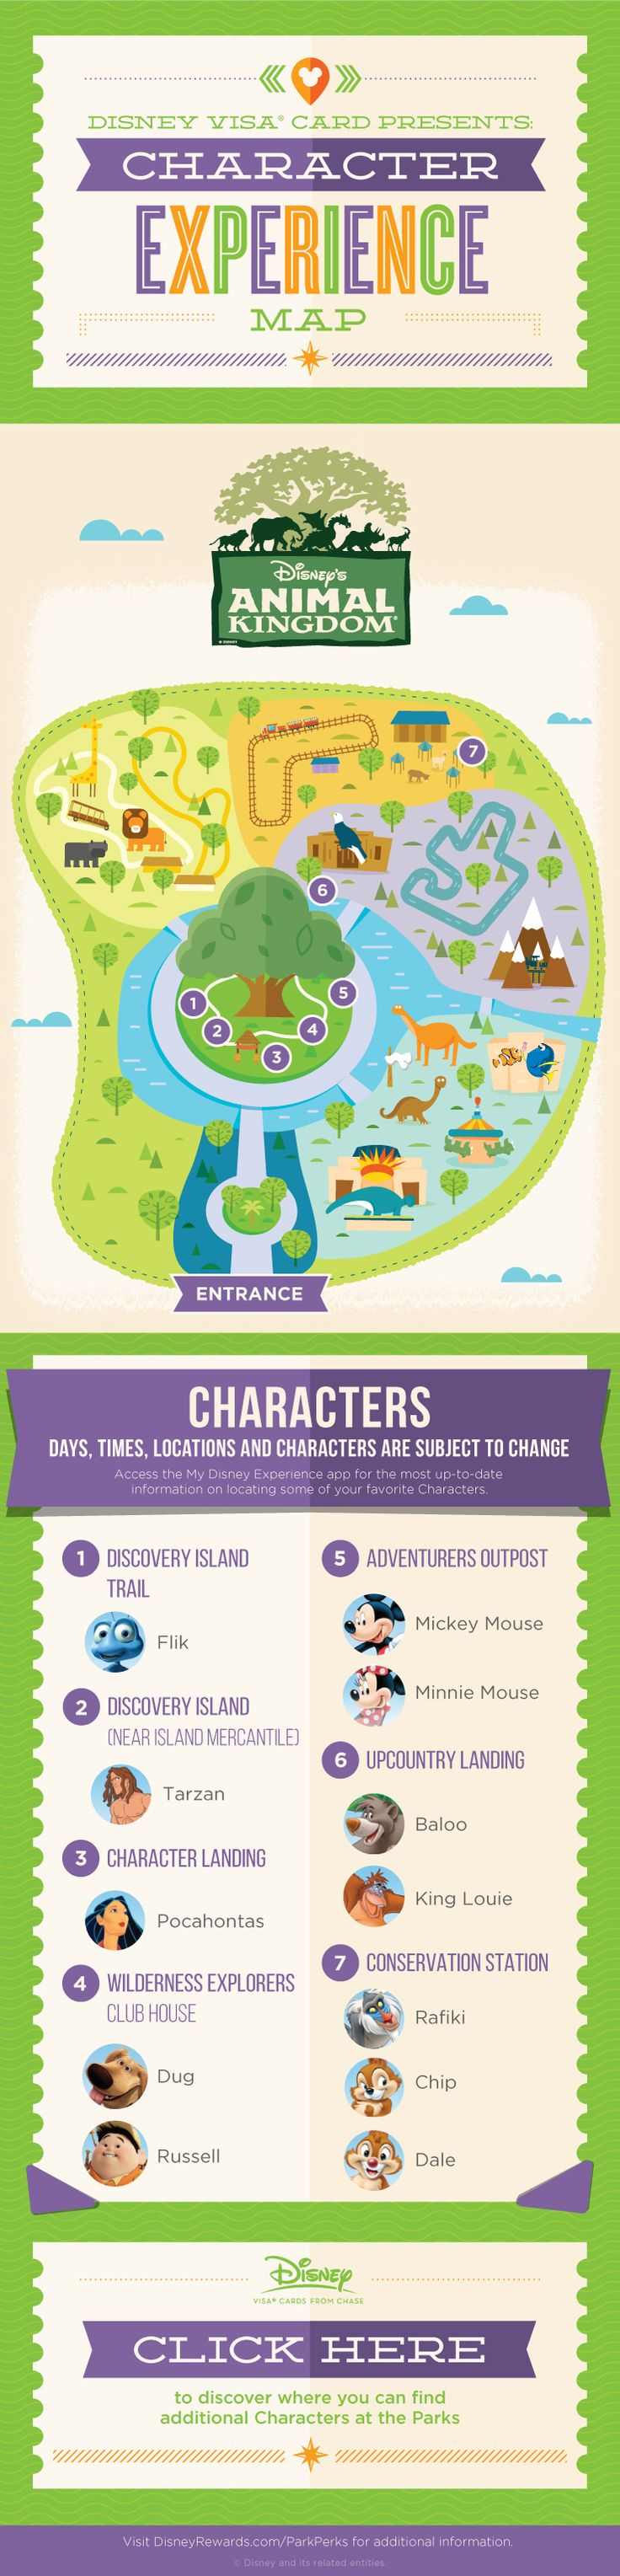 There are beloved Disney Characters waiting among the wildlife to meet you in Disney's Animal Kingdom®. Want to find out who, where, and when? You don't need to go on safari - just open up this guide and get going! Download the My Disney Experience app for the most up-to-date information.